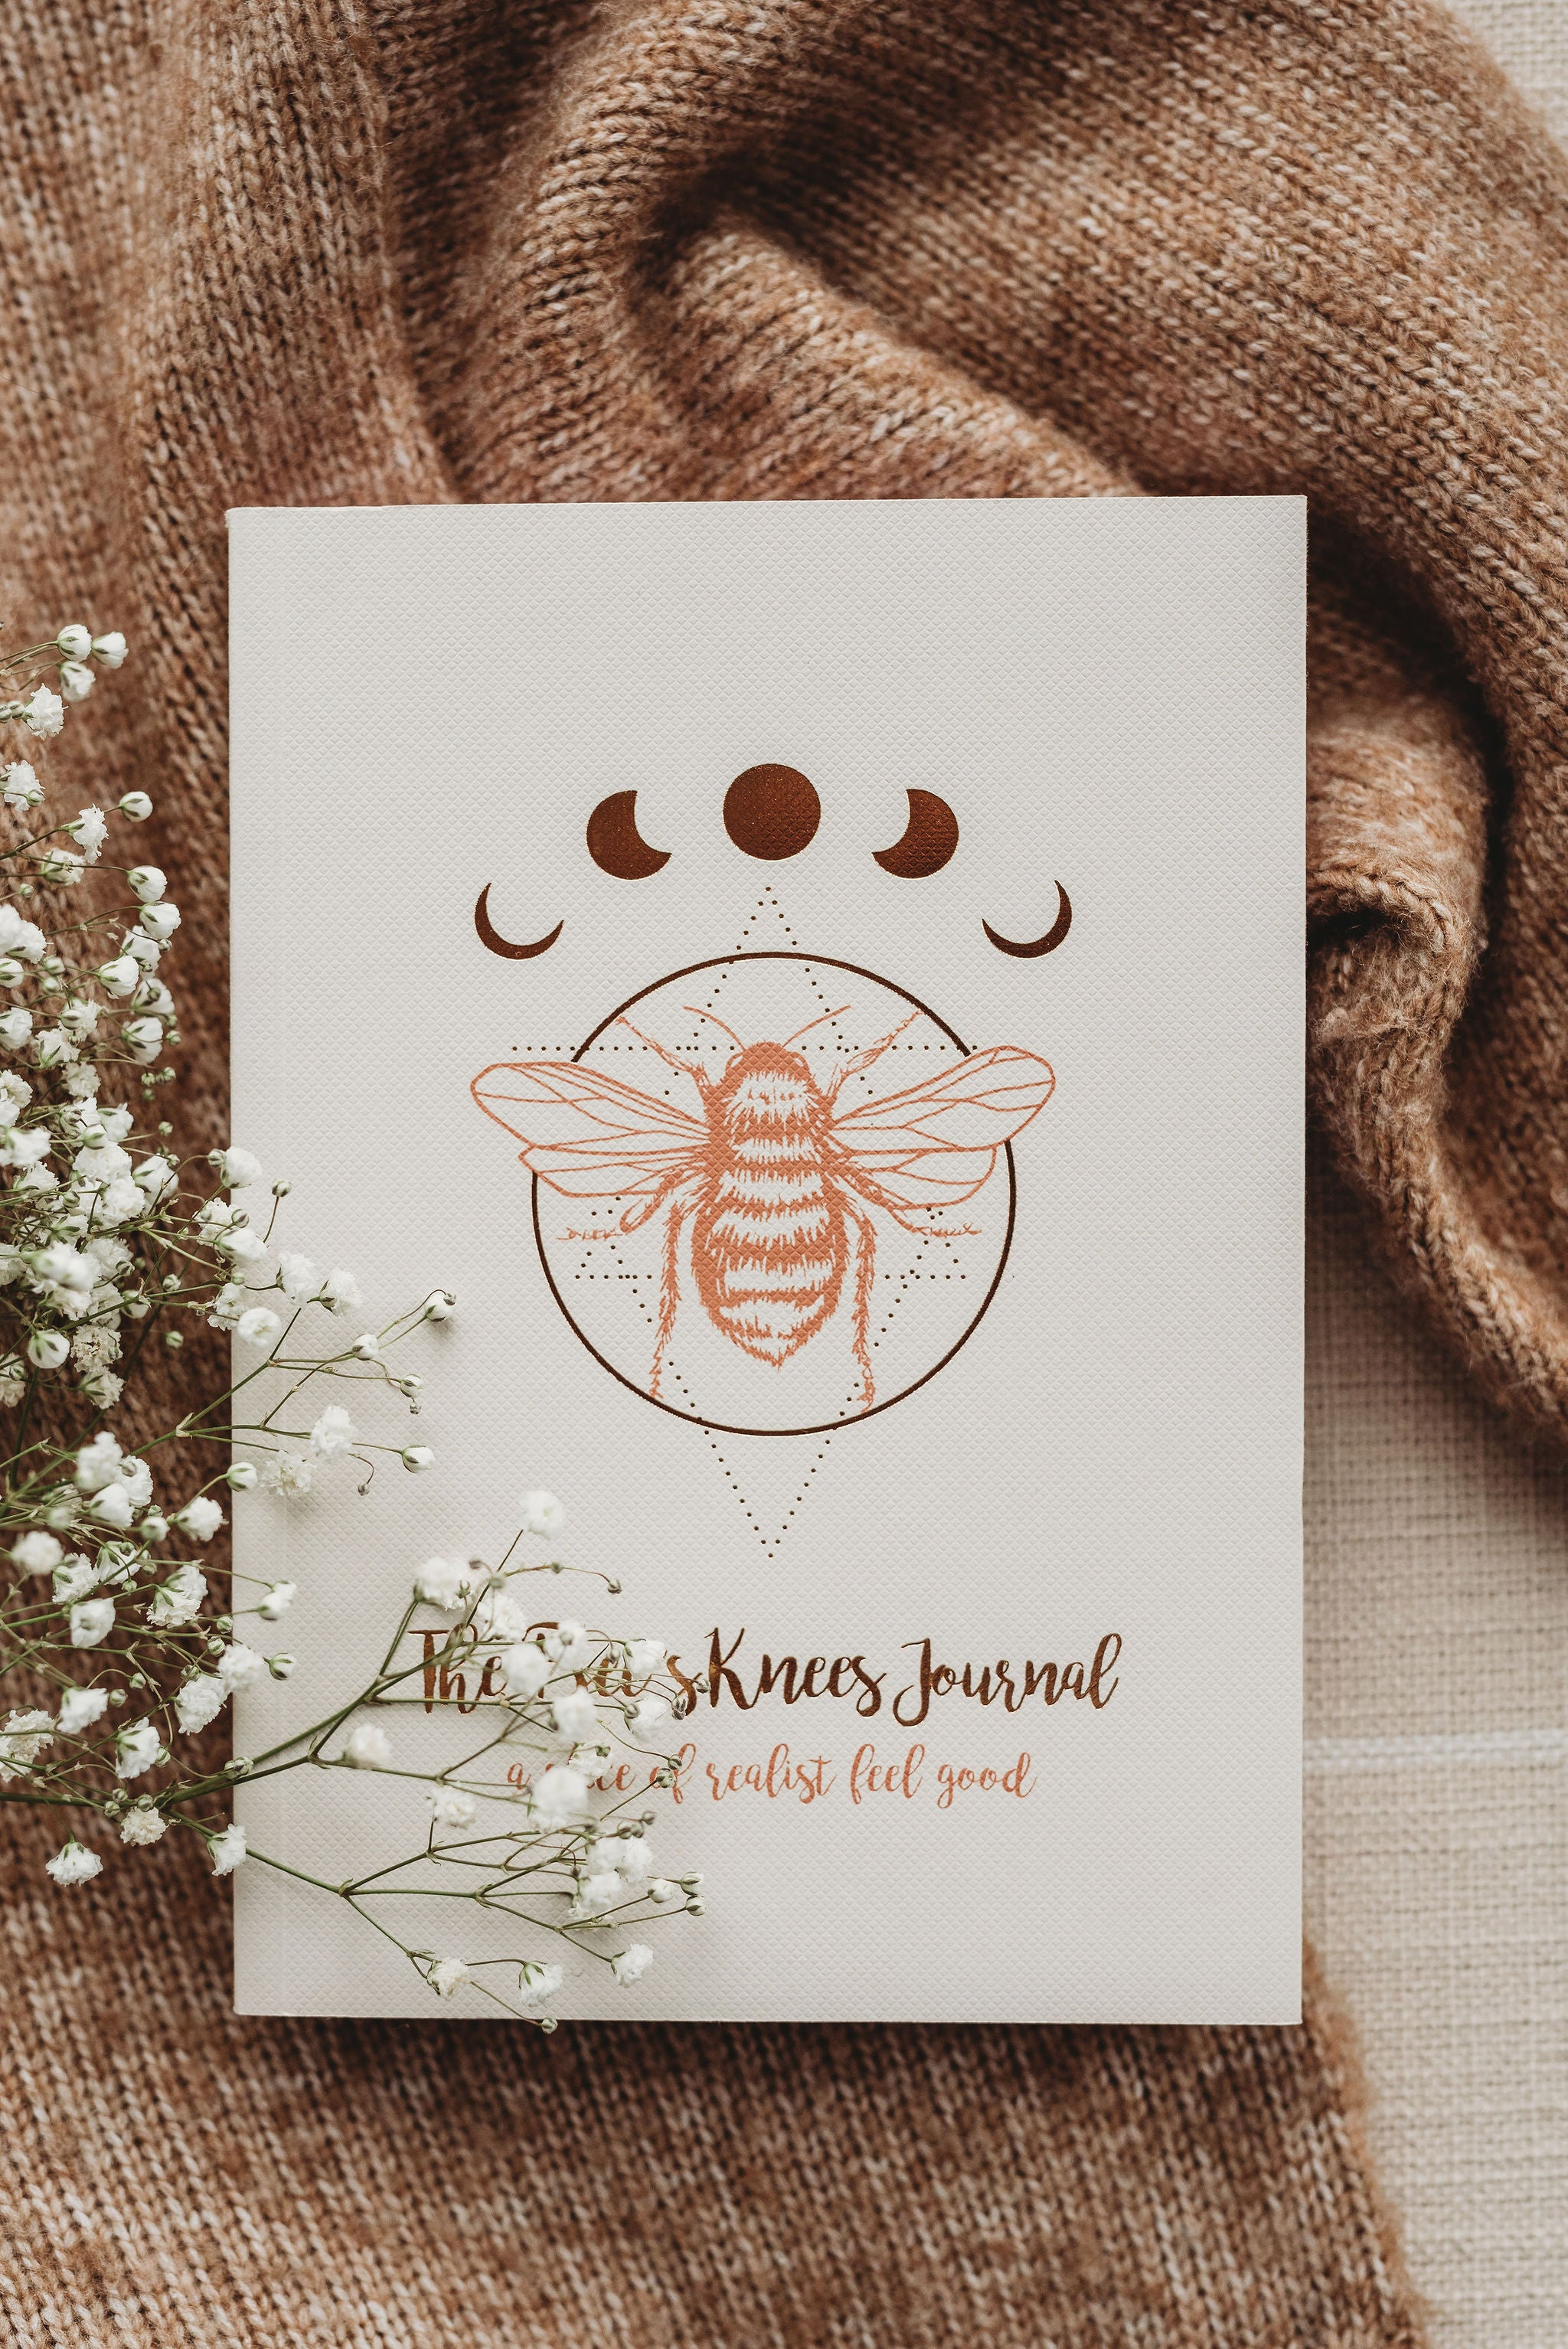 THE BEE'S KNEES JOURNAL